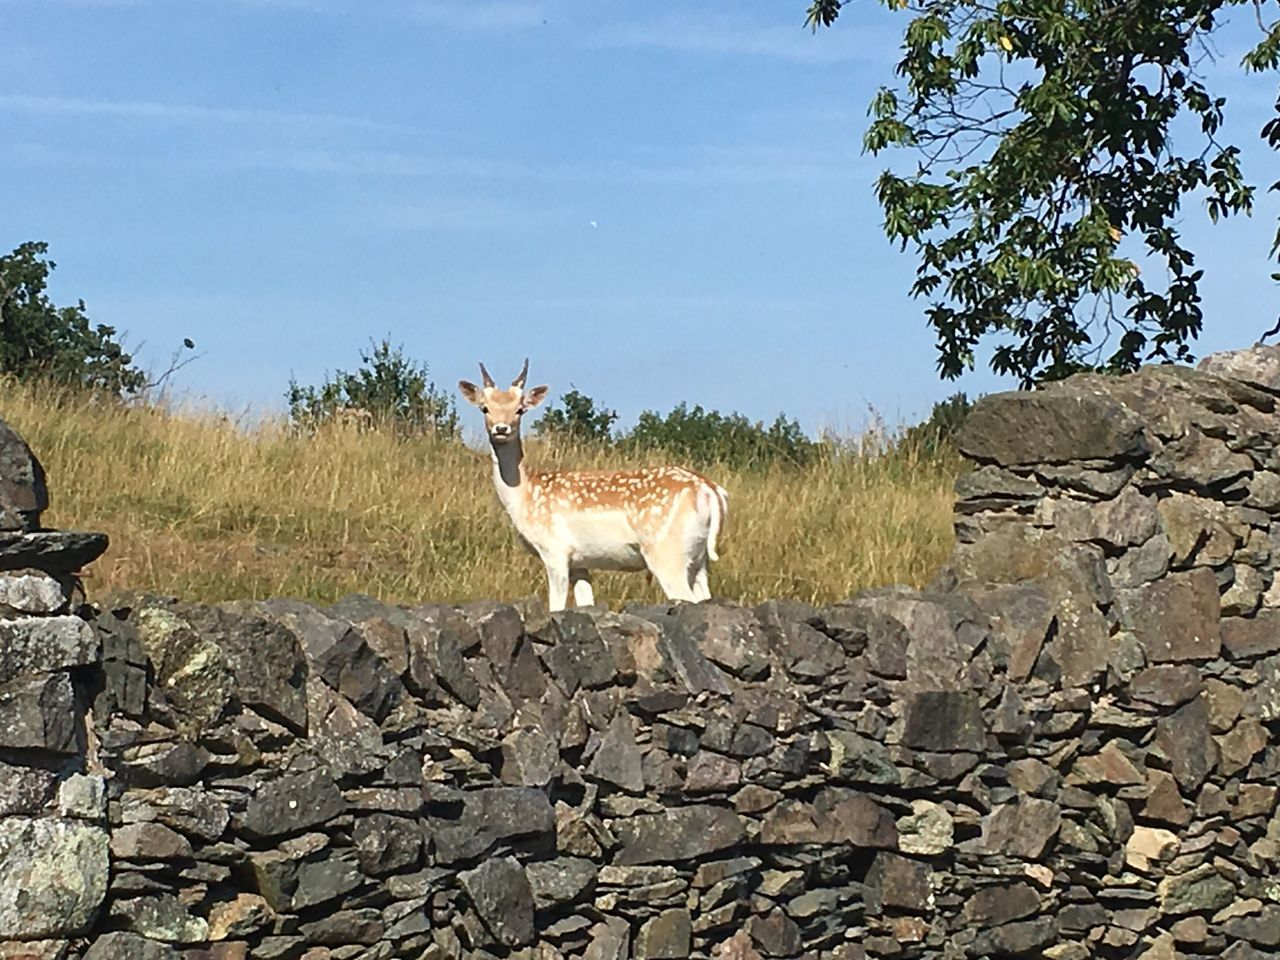 Tadaa Community Ladyphotographerofthemonth Outdoors No People Day Beauty In Nature Animal Wildlife Grass Animals In The Wild Animal Themes Sky Mammal Tree Nature Field One Animal Deer Beauty In Nature Bradgate Park Bradgatepark Bradgate